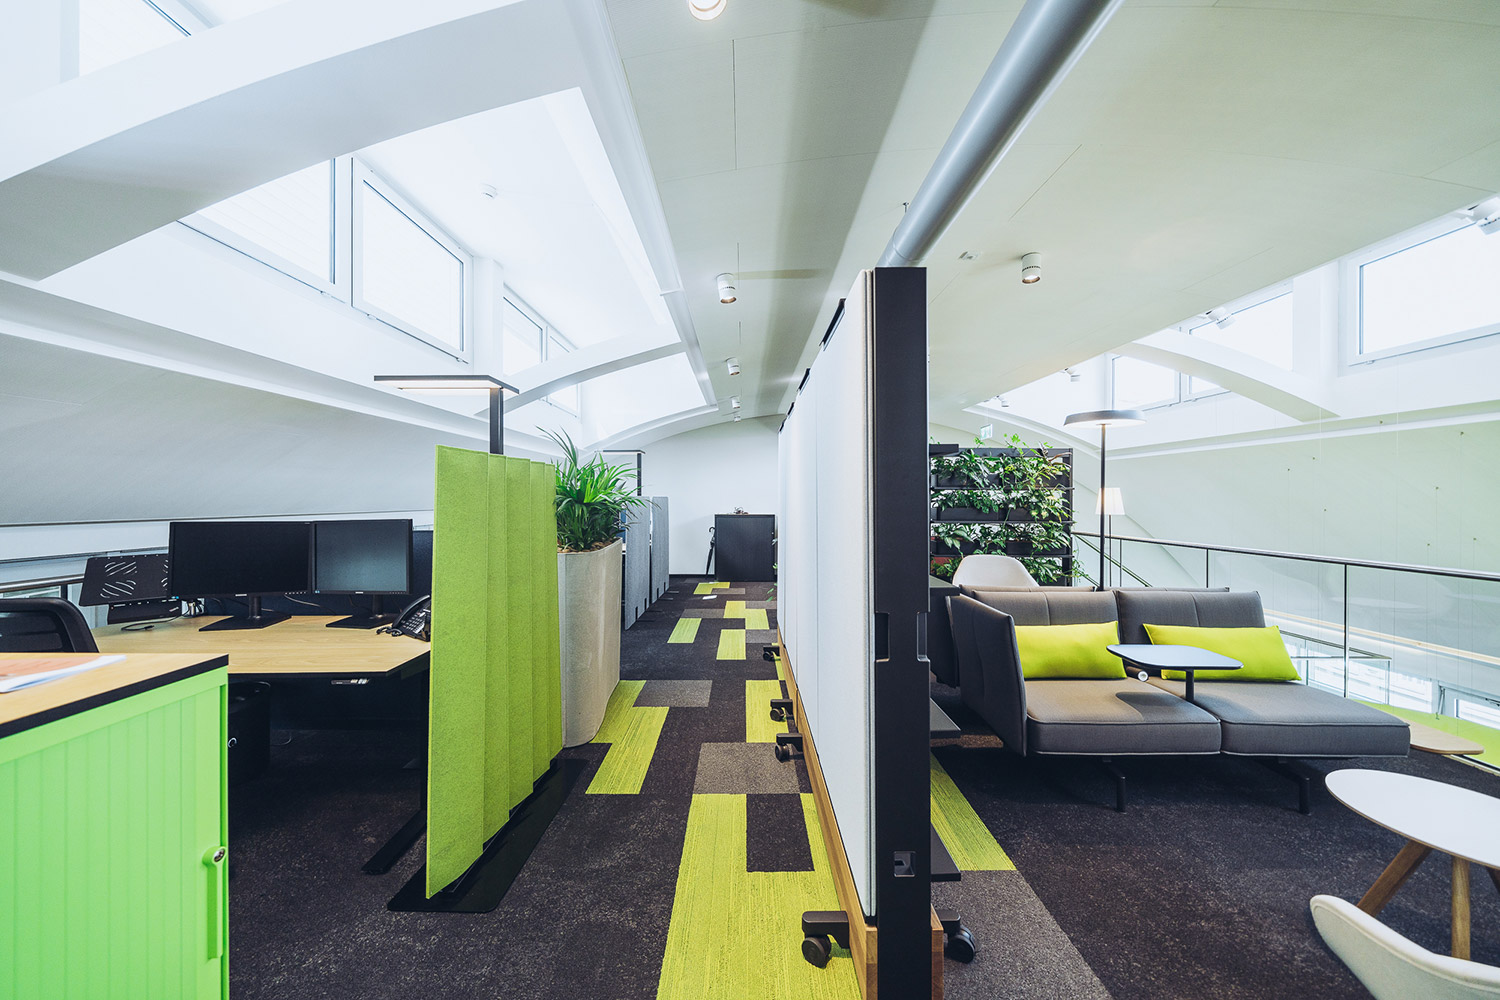 SWICA, one of Switzerland's leading healthcare and insurance organizations, retained WSDG to create an efficient and acoustically pleasant open space environment. Acoustic dividers.